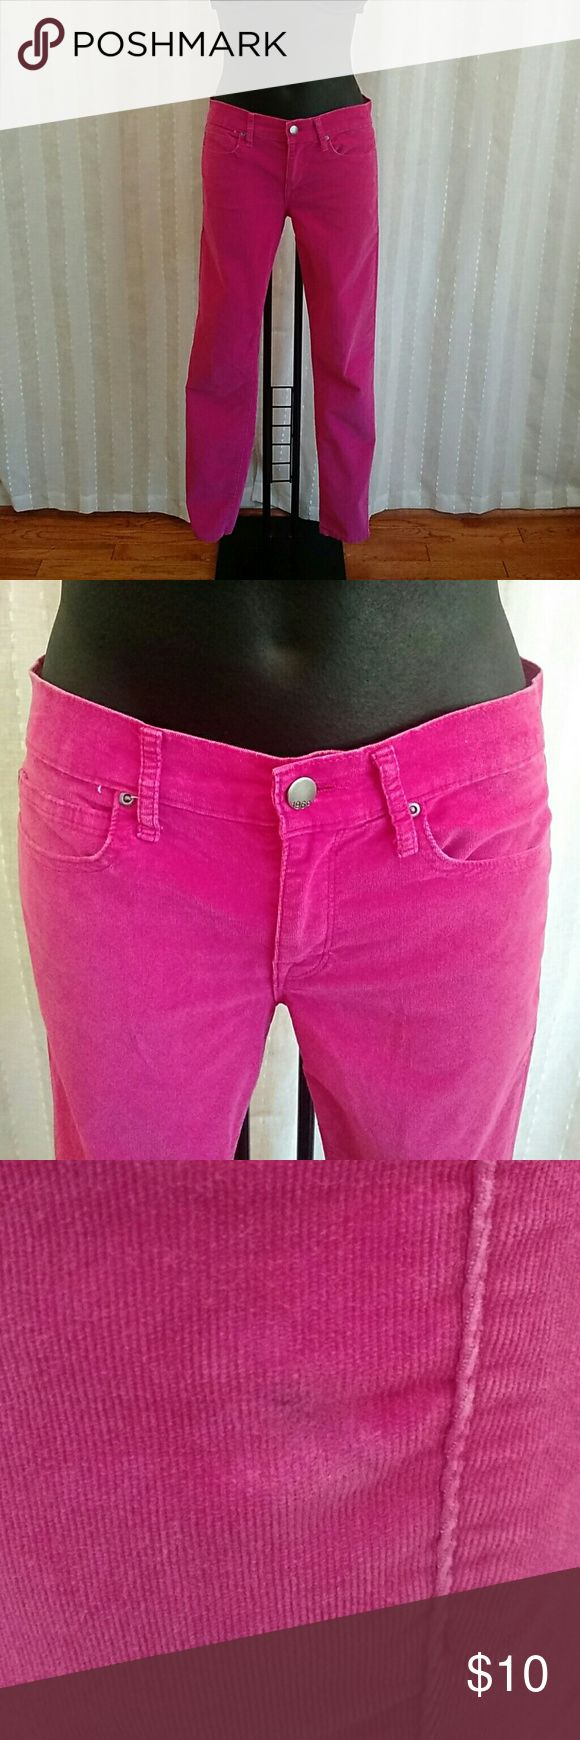 Gap 1969 legging Jean Hot pink corduroy, legging Jean, size 27 regular , button-front front closure, small ink Mark by left pocket picture above, moderately loved GAP Jeans